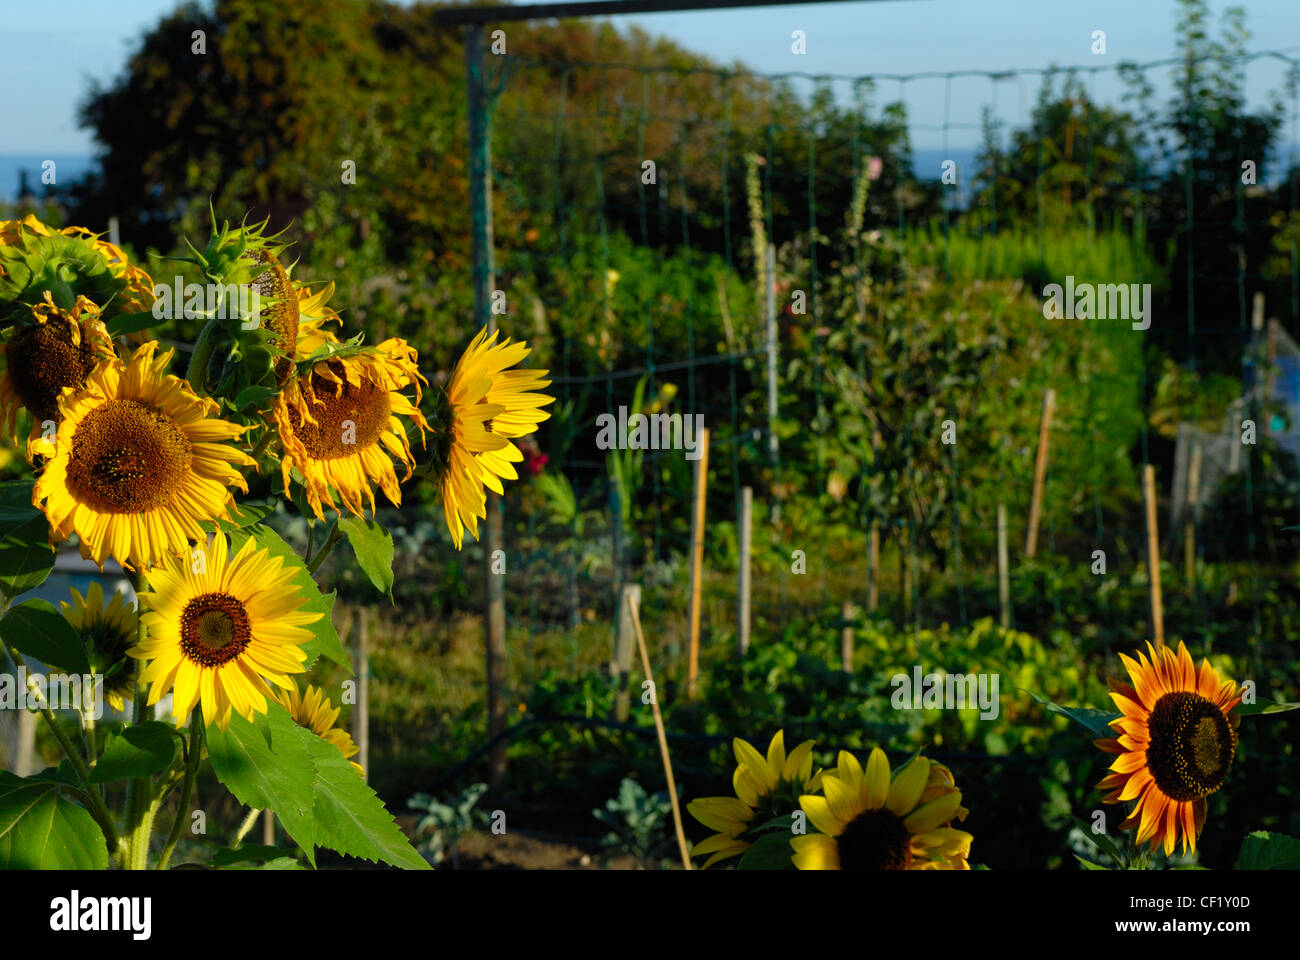 Sunflowers growing on an allotment, with vegetables in the background. - Stock Image